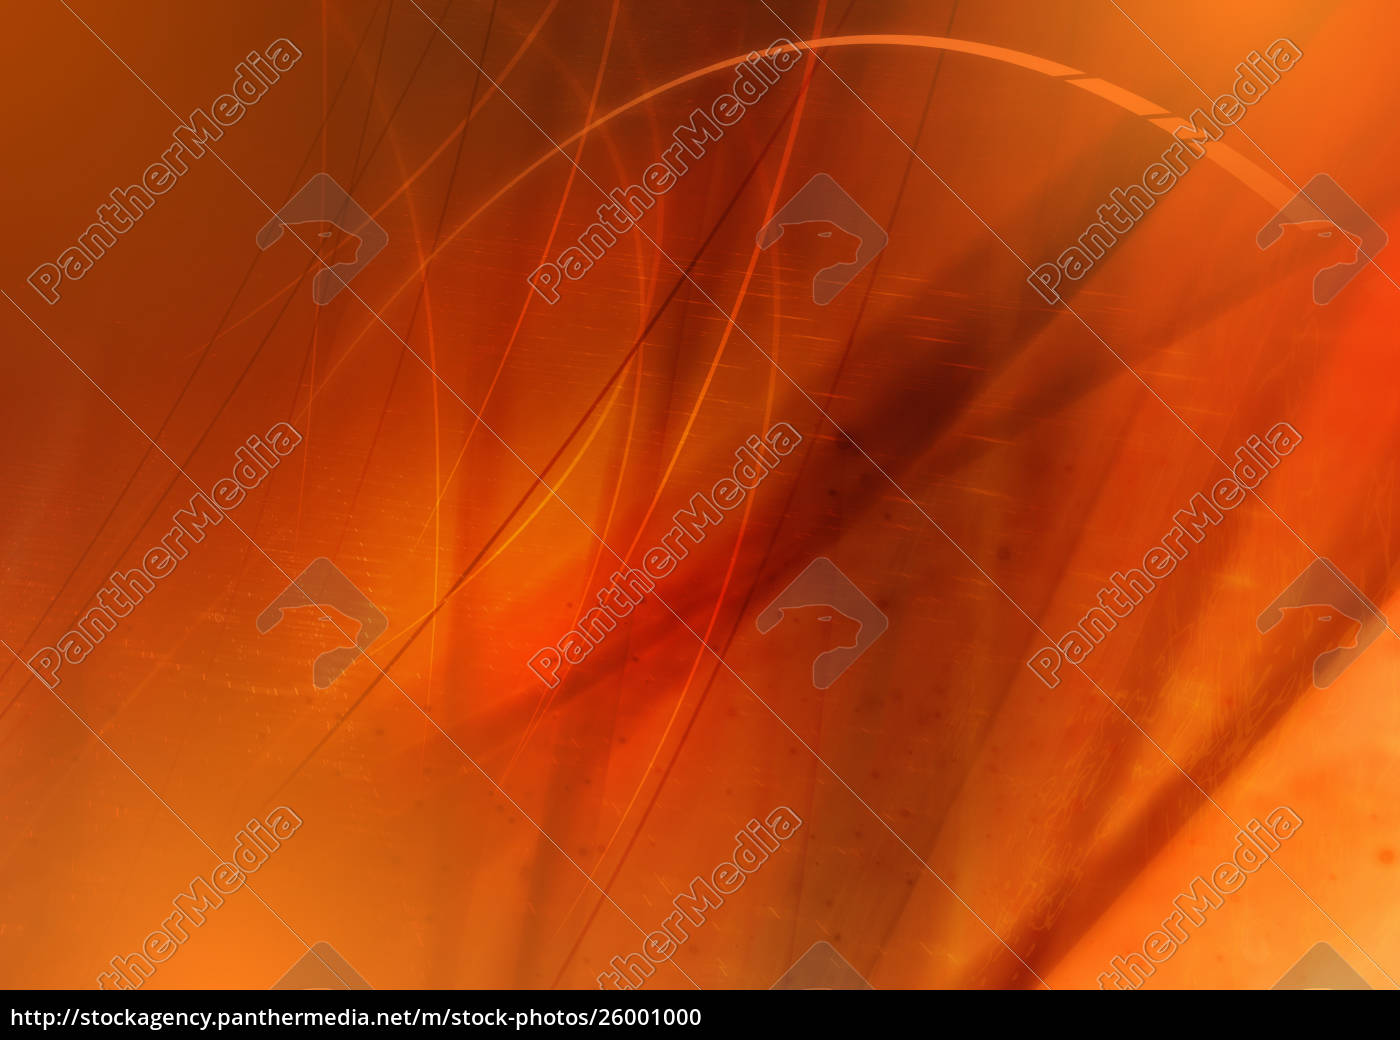 abstract, image, of, orange, swirling, lines - 26001000